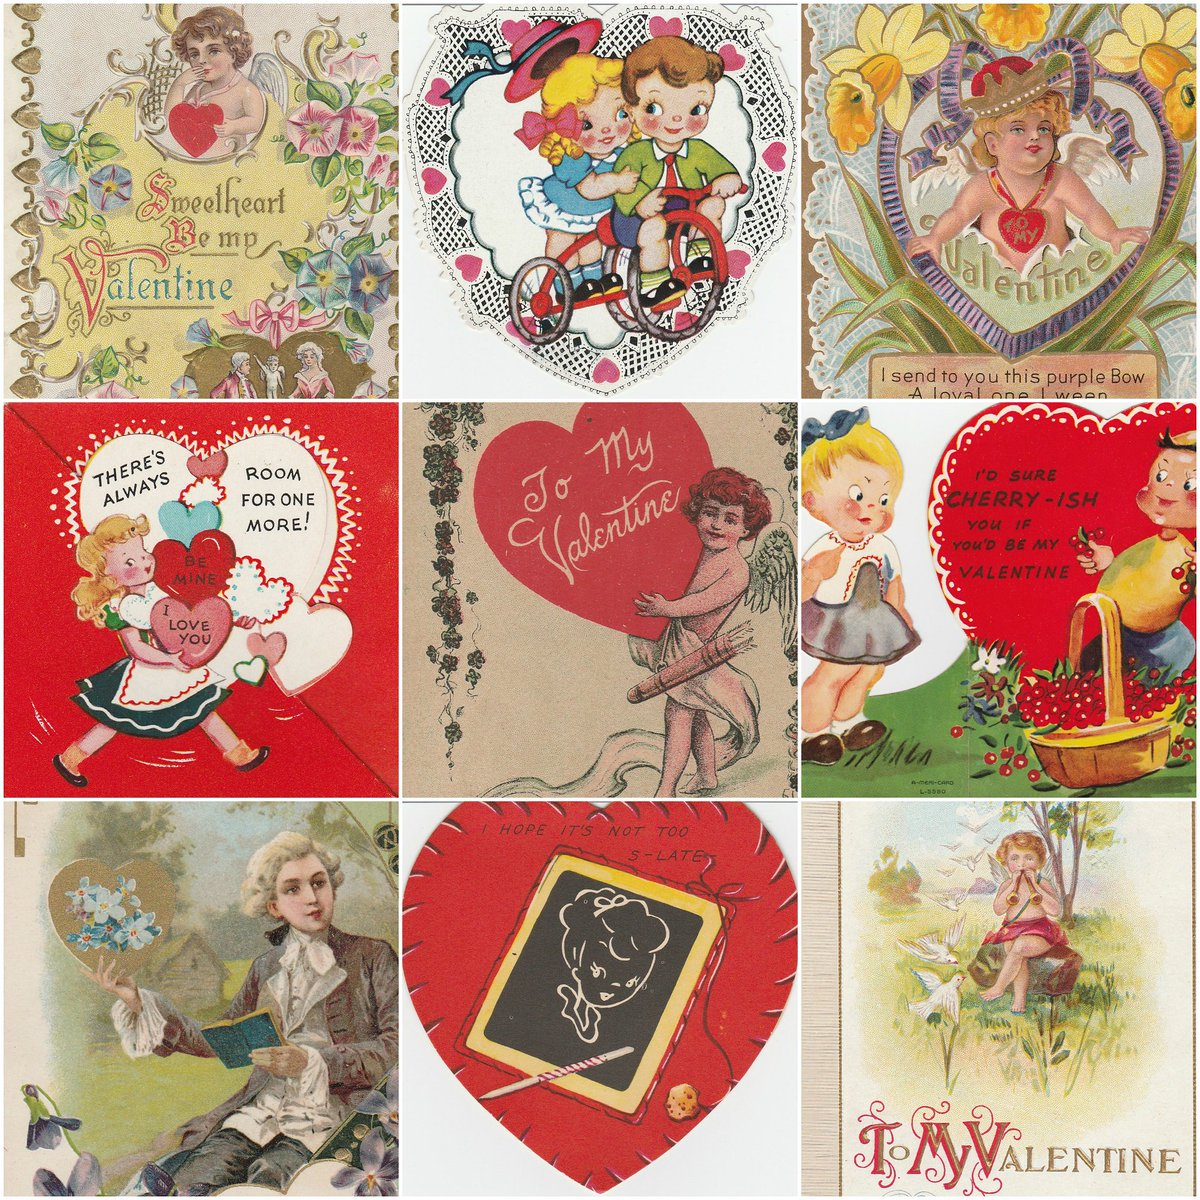 New arrivals at Birdhouse Books - beautiful #vintage #Valentines to collect, frame, or gift:https://t.co/s51LBtFNaA https://t.co/uwdta5O2rV